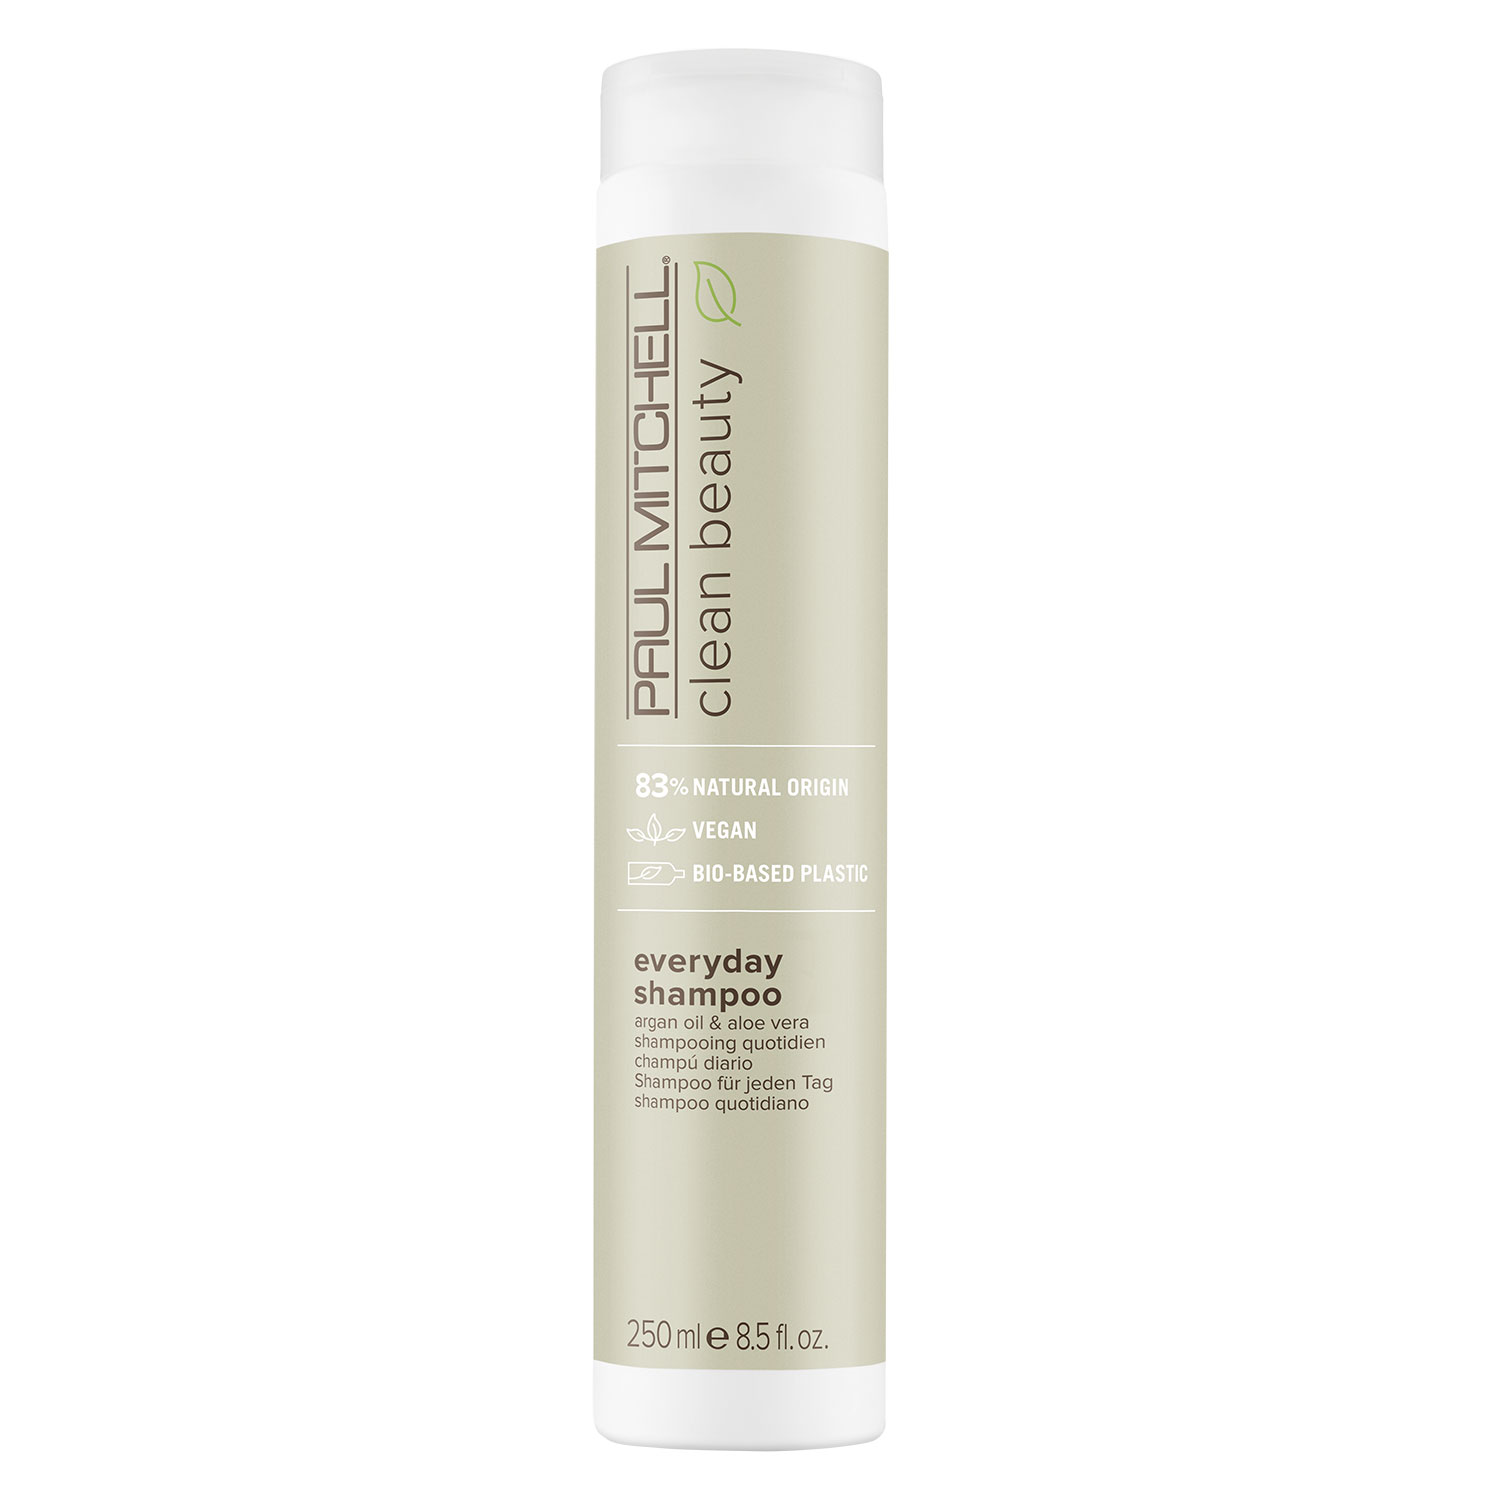 Paul Mitchell Clean Beauty - Everyday Shampoo